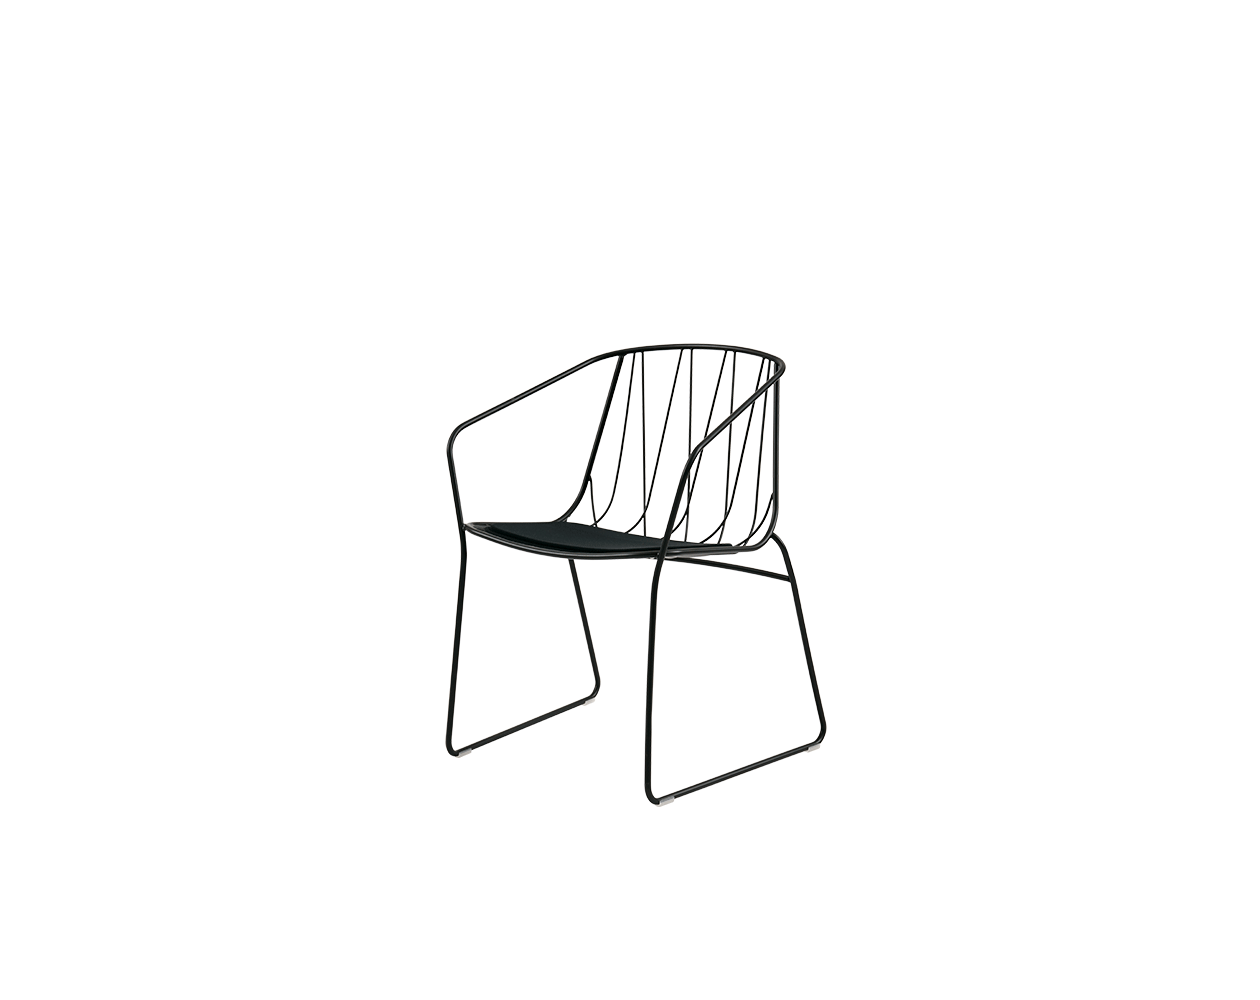 Armchair drawing furniture line. Chee chair with arms